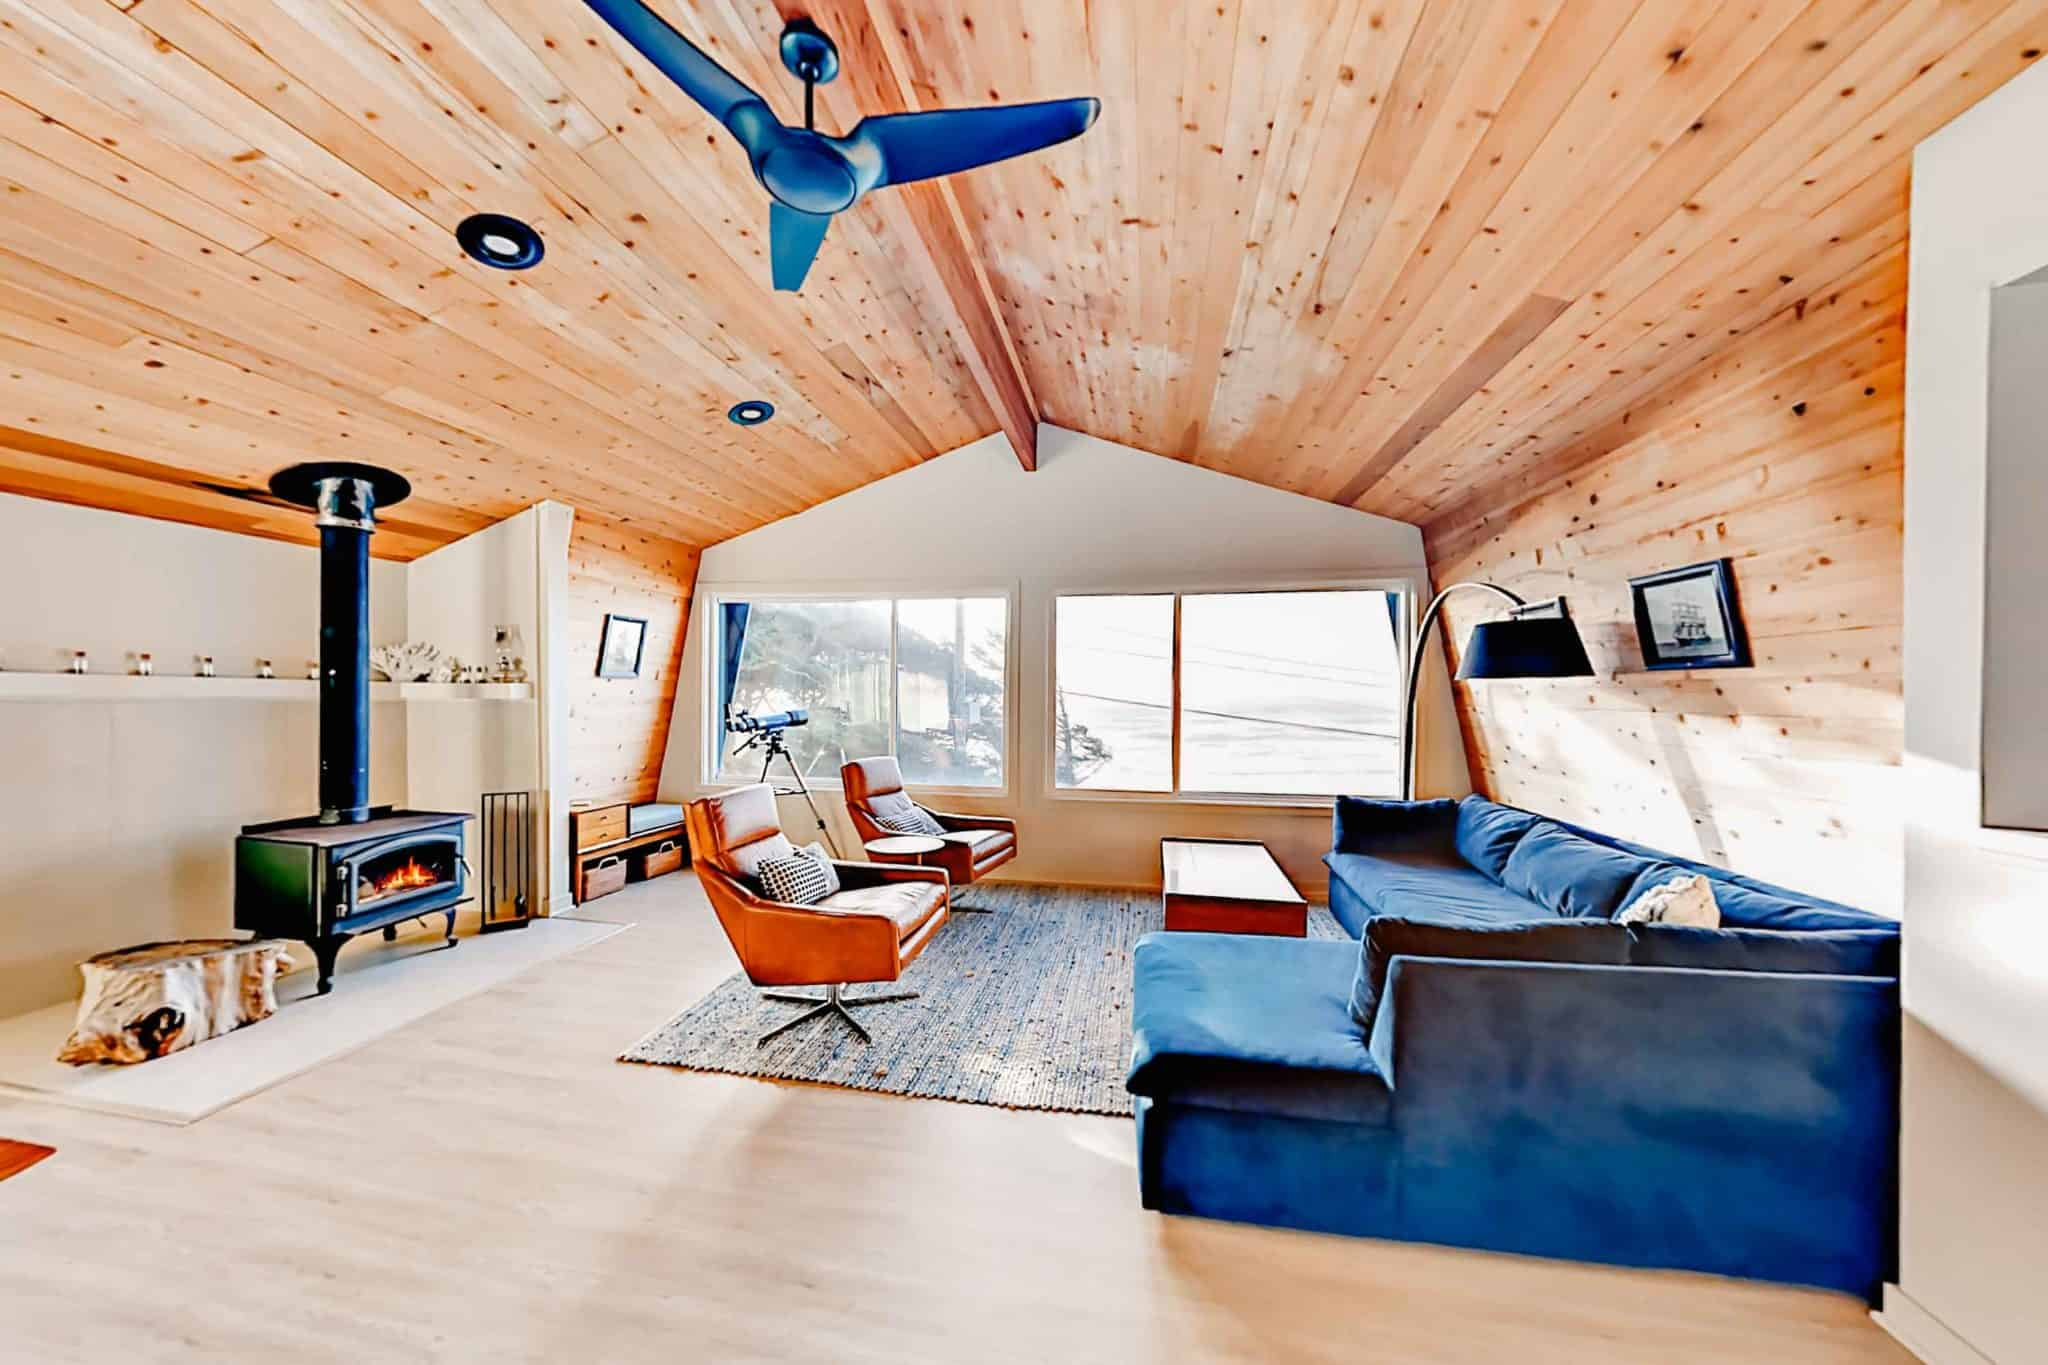 view of a cabin interior with modern furniture